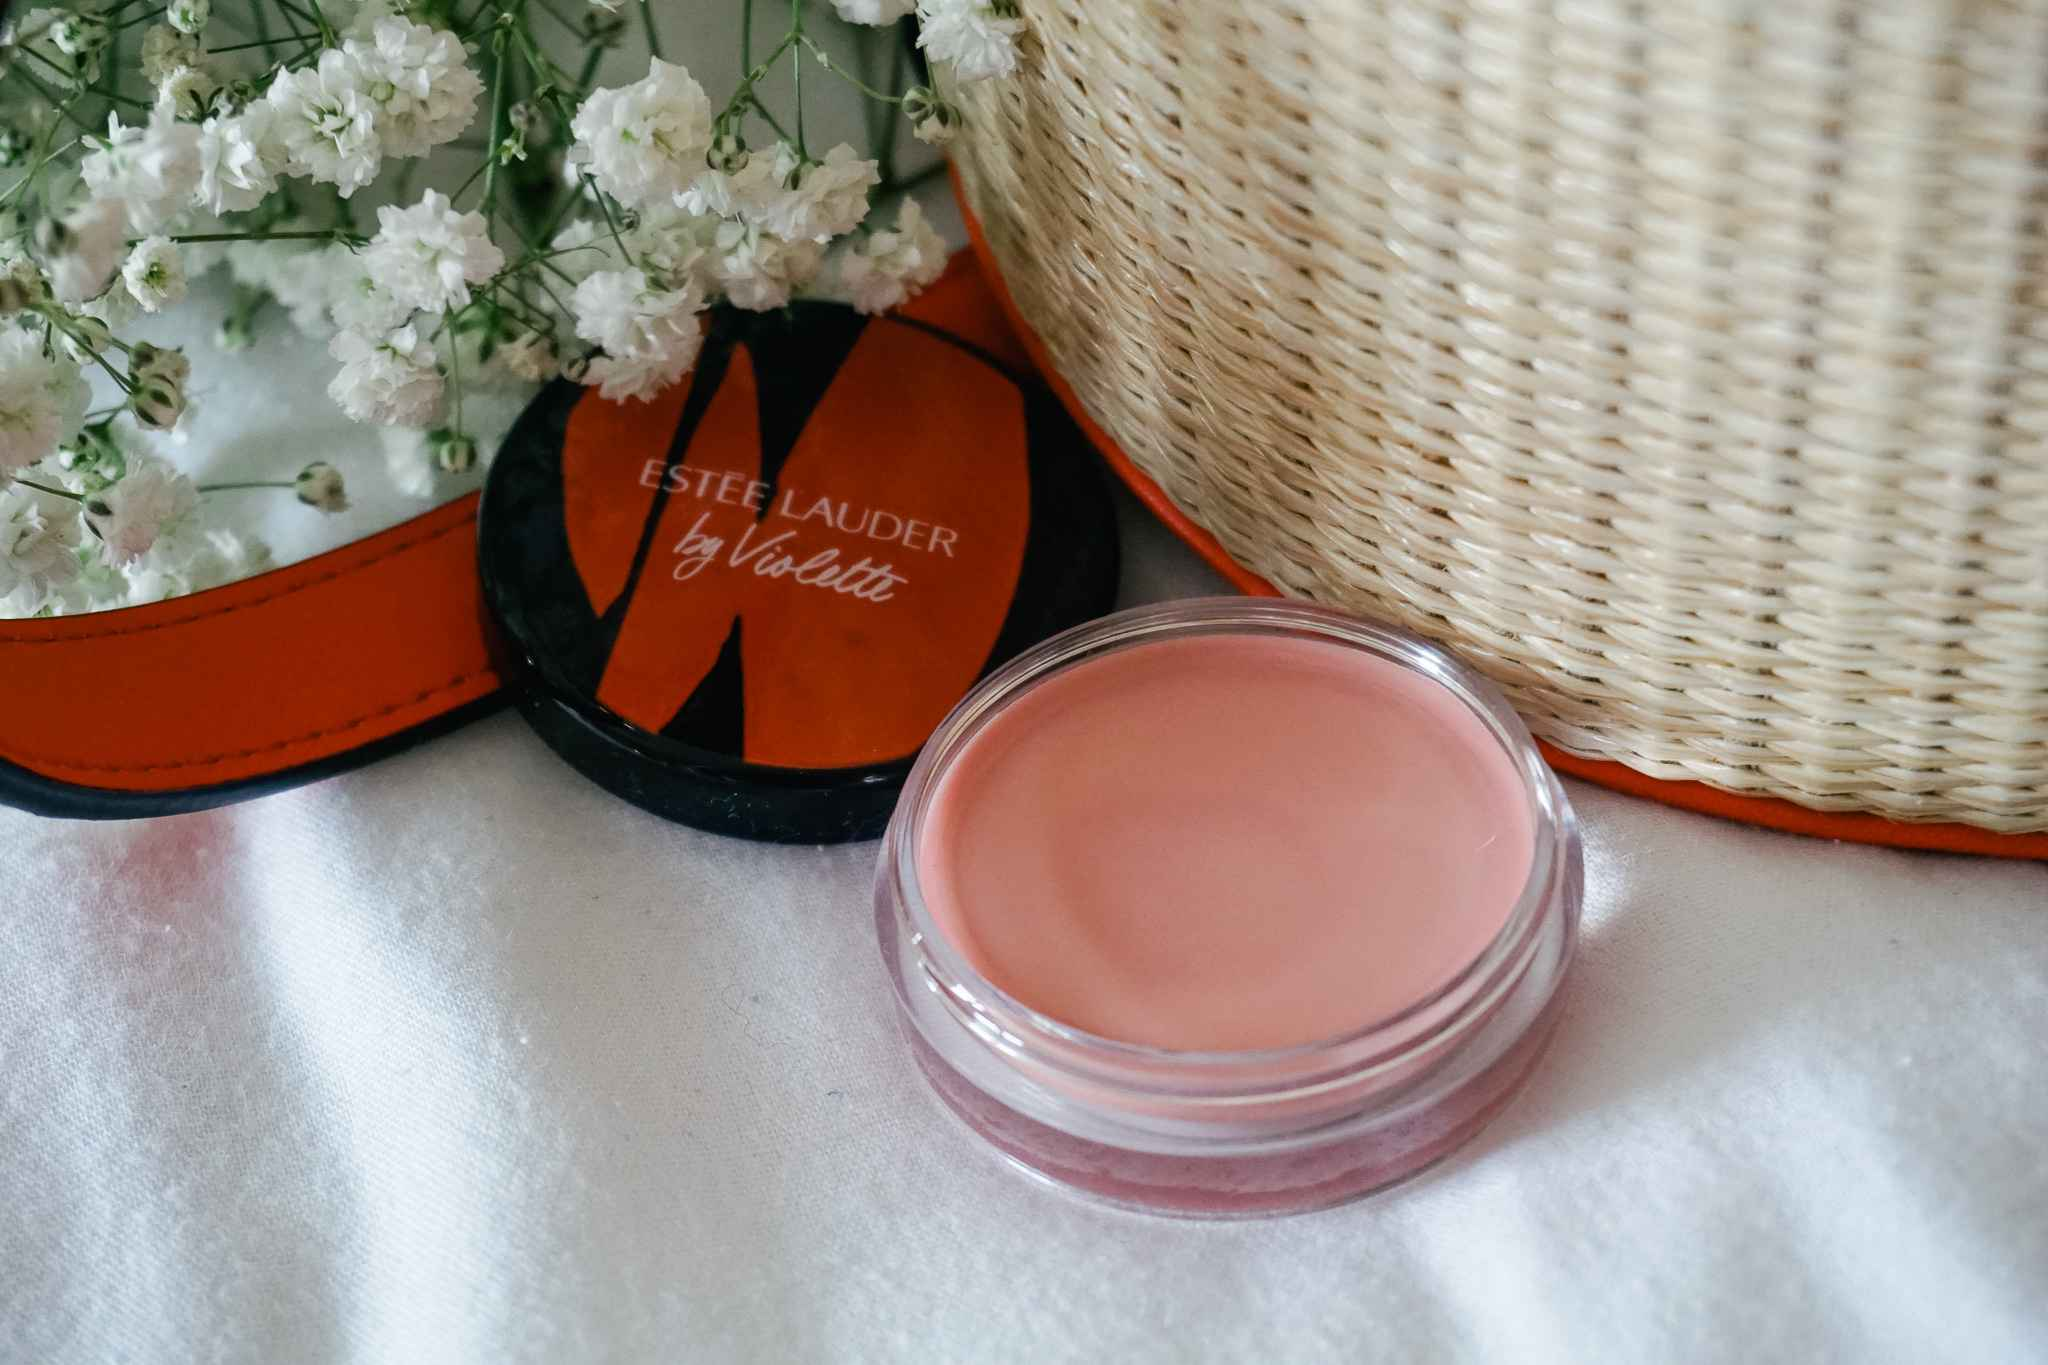 Soft Glow for Lips & Cheeks by Violette